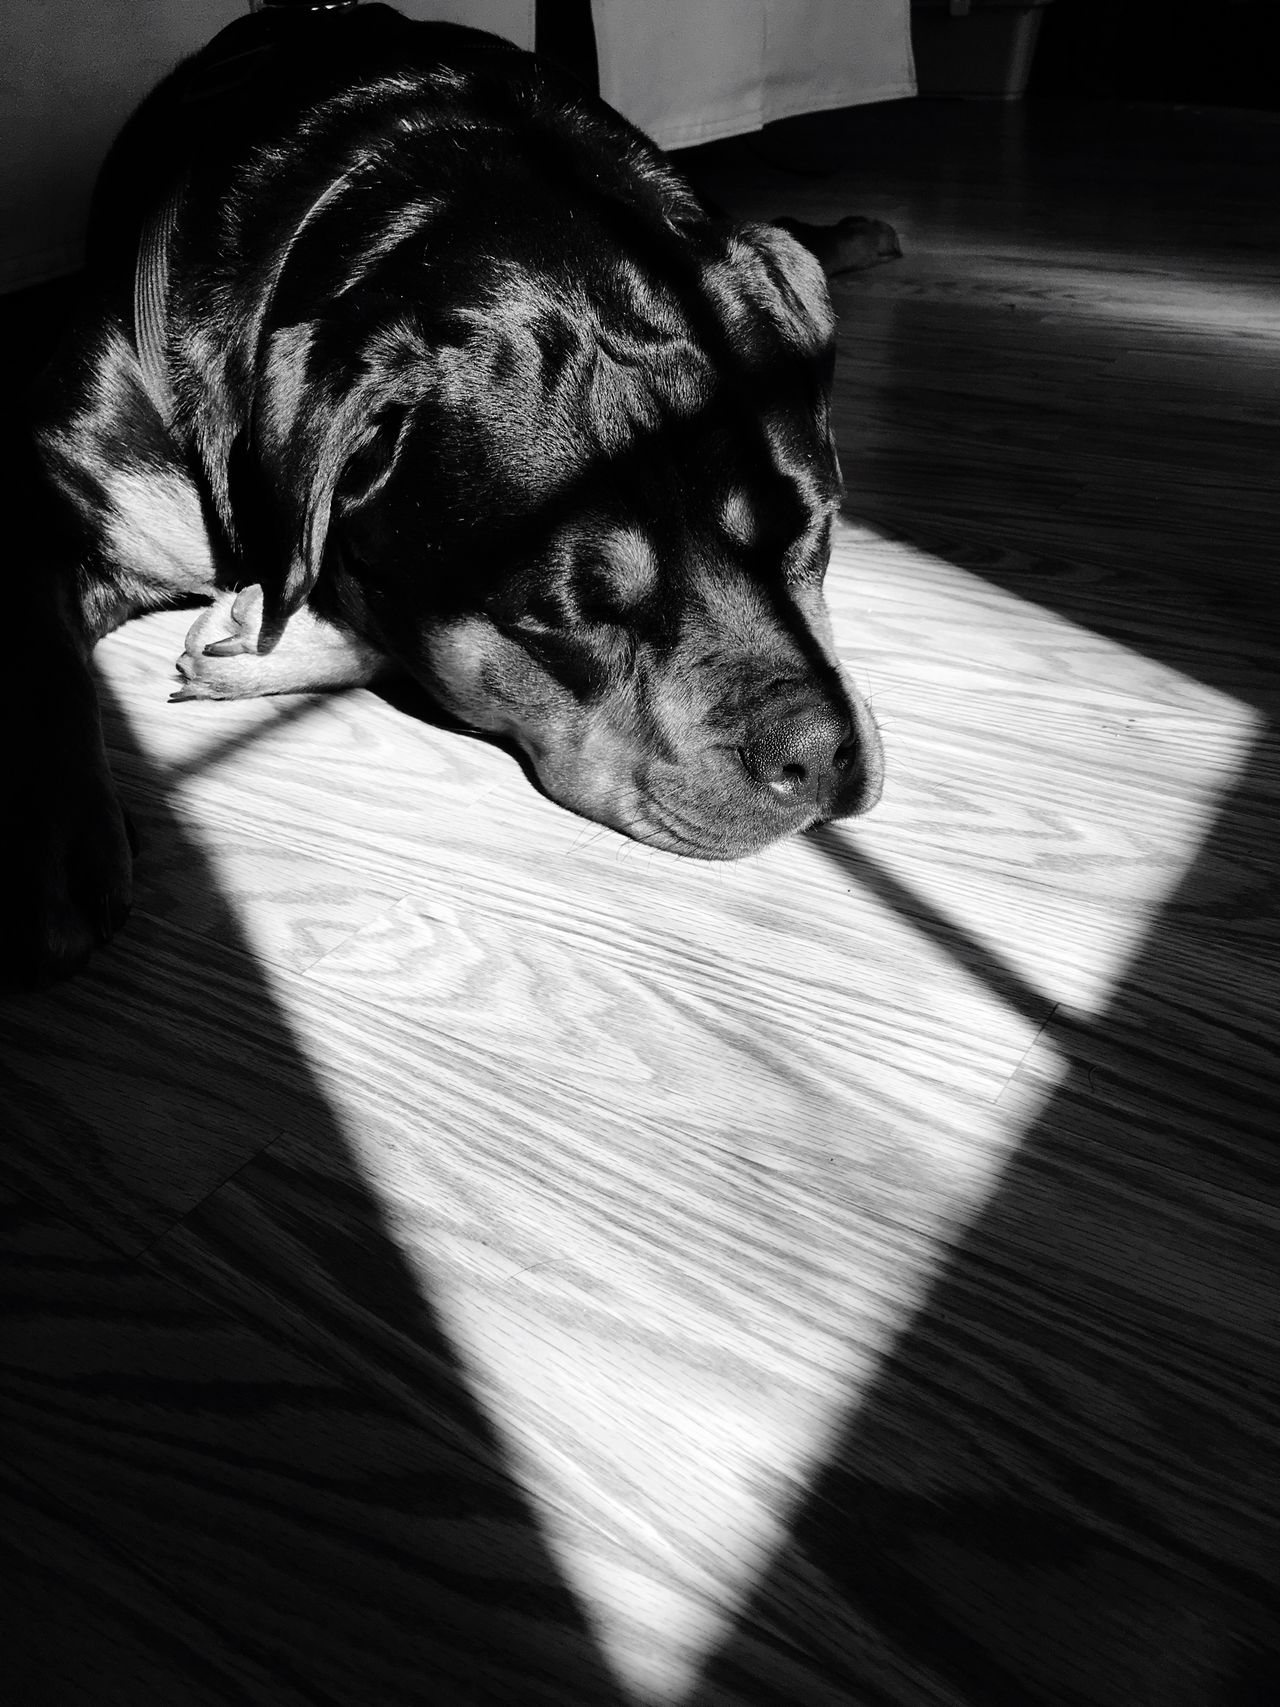 Pets Dog Animal Themes One Animal Domestic Animals Mammal Indoors  Close-up No People Day Monochrome Light And Shadow Black And White Rottweiler Texture Light